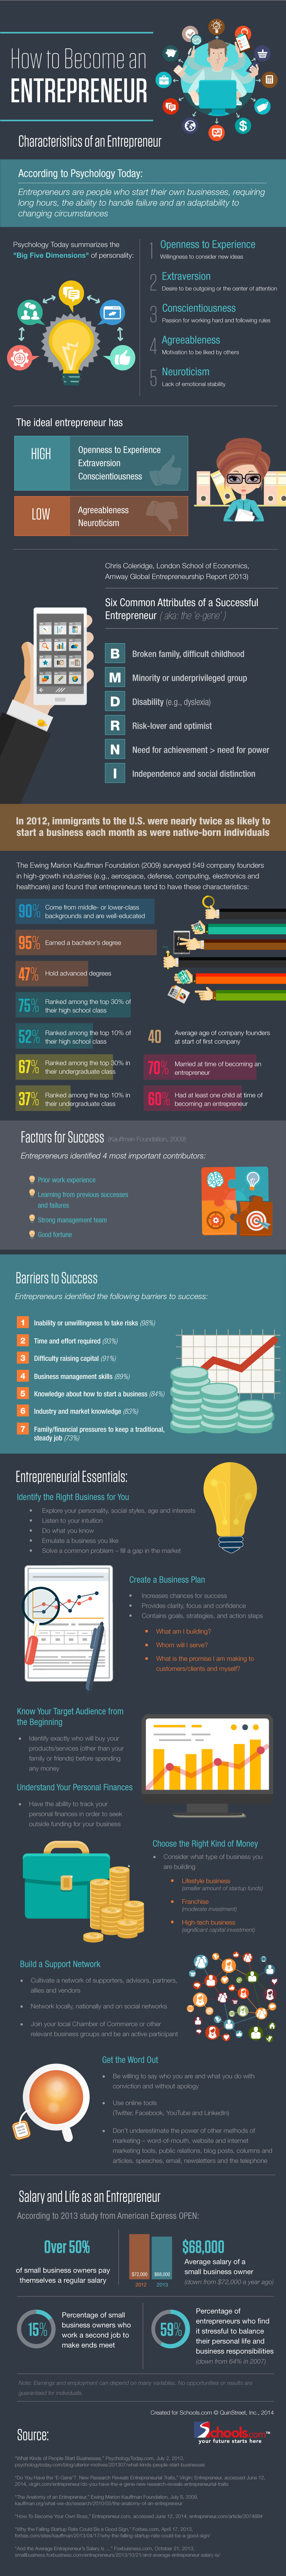 Characteristics-of-Successful-Entrepreneurs